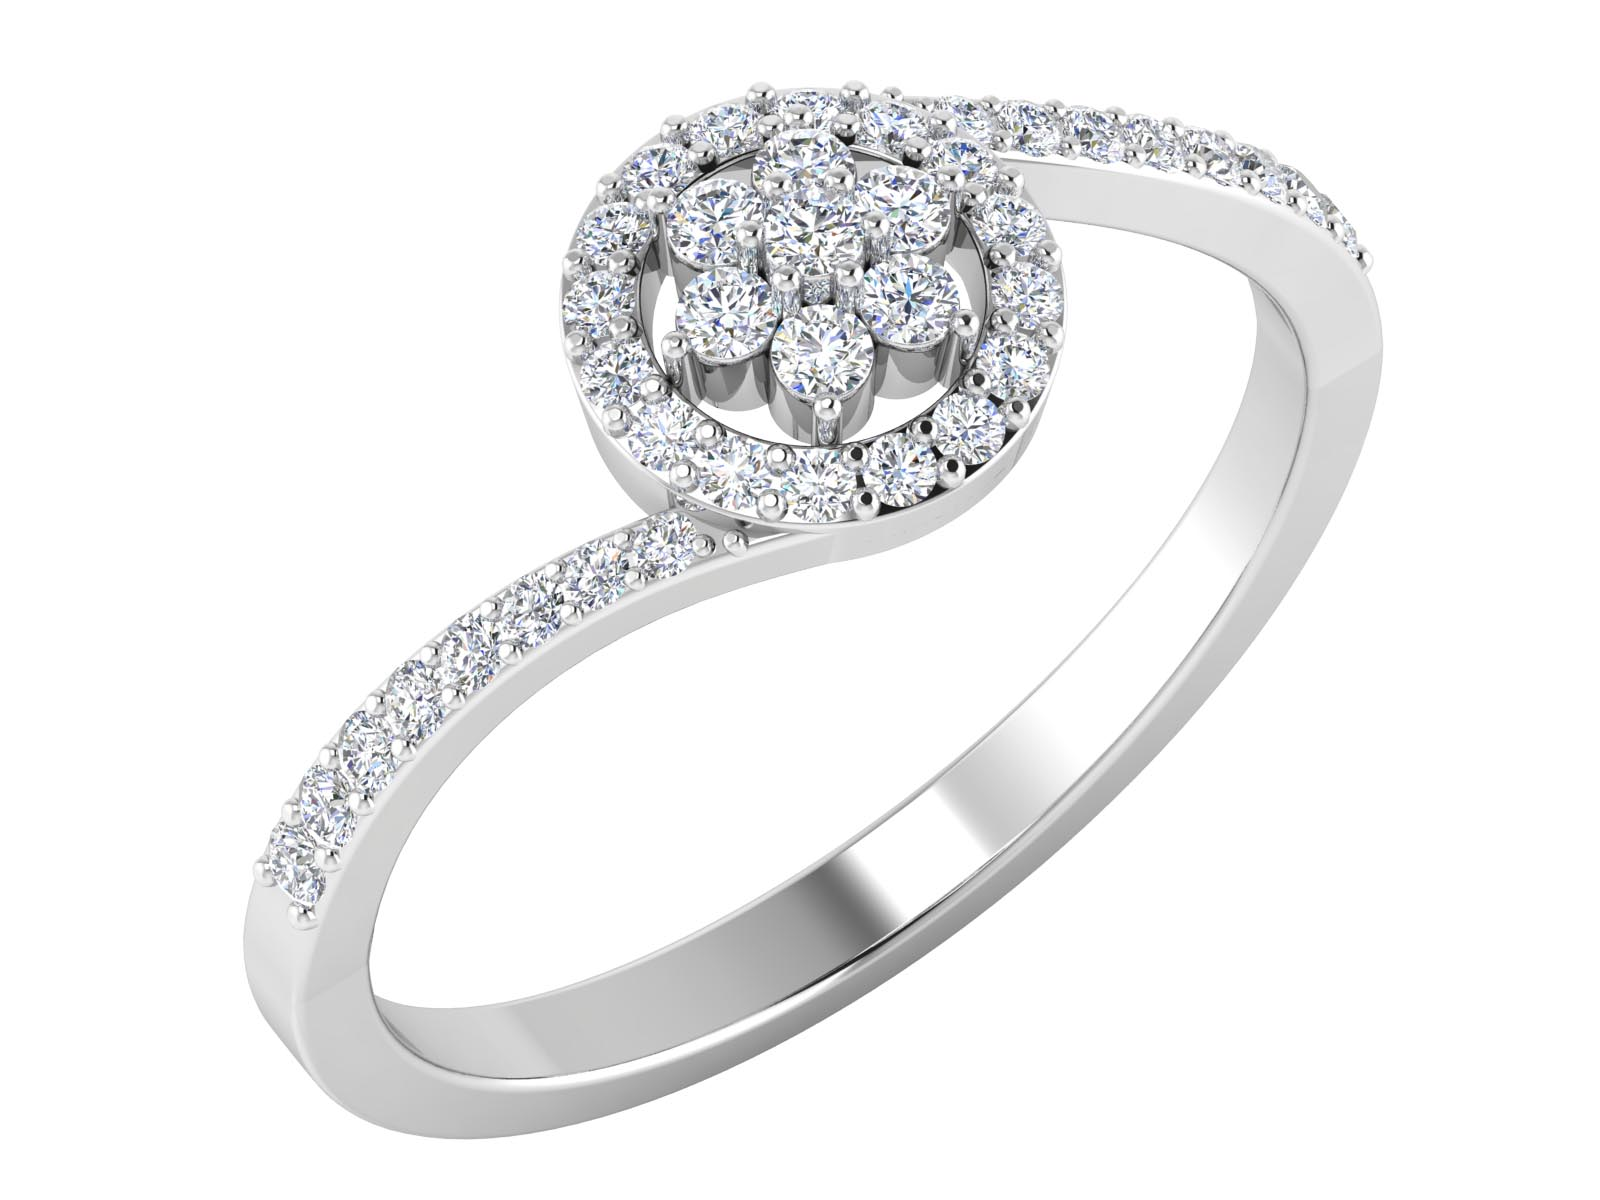 0.42 Cts Yellow Gold Certified Diamond Ring